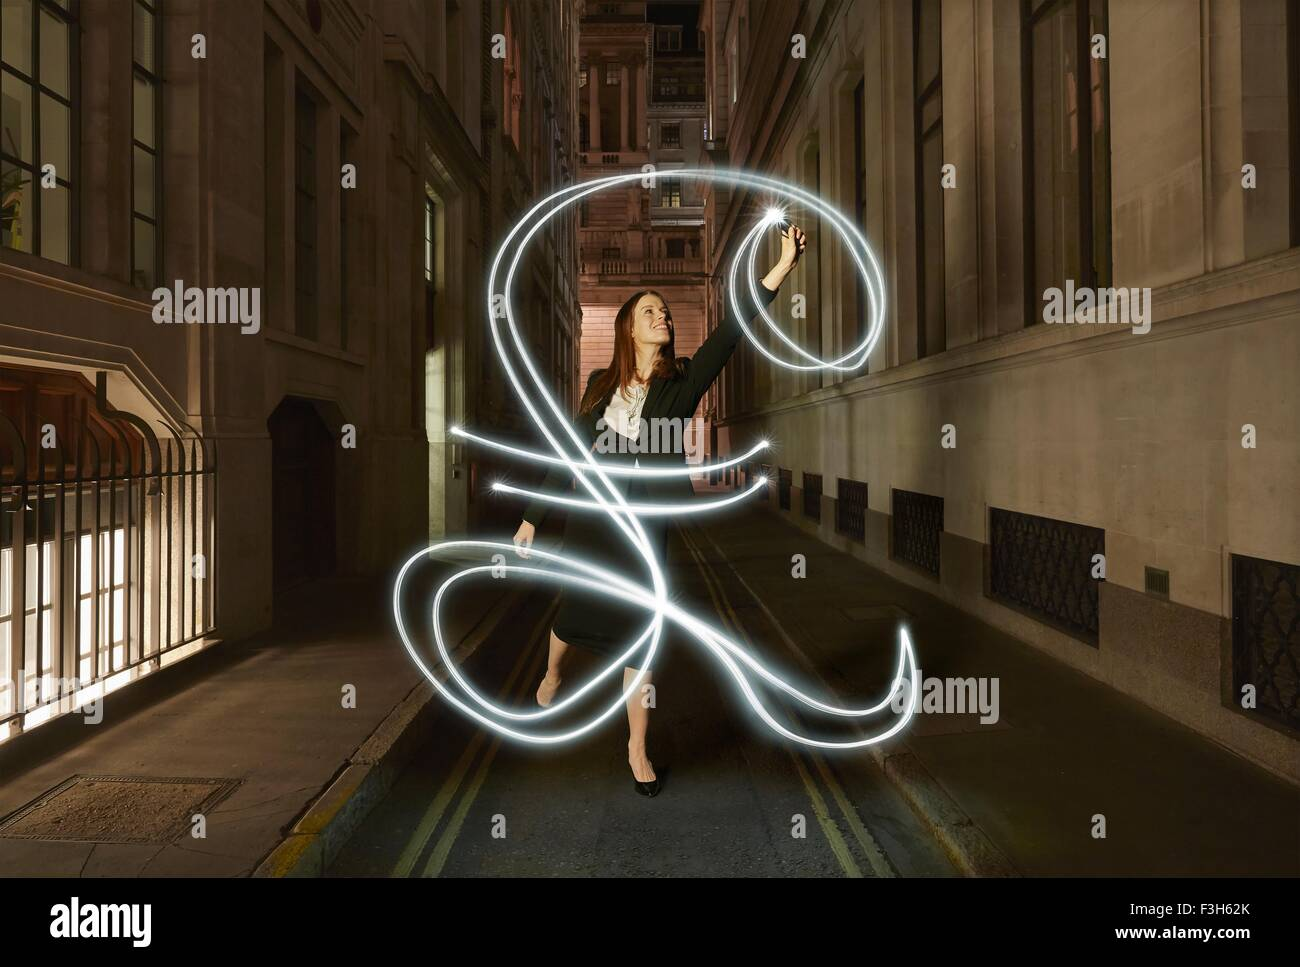 Businesswoman light painting glowing pound sign on city street at night Photo Stock